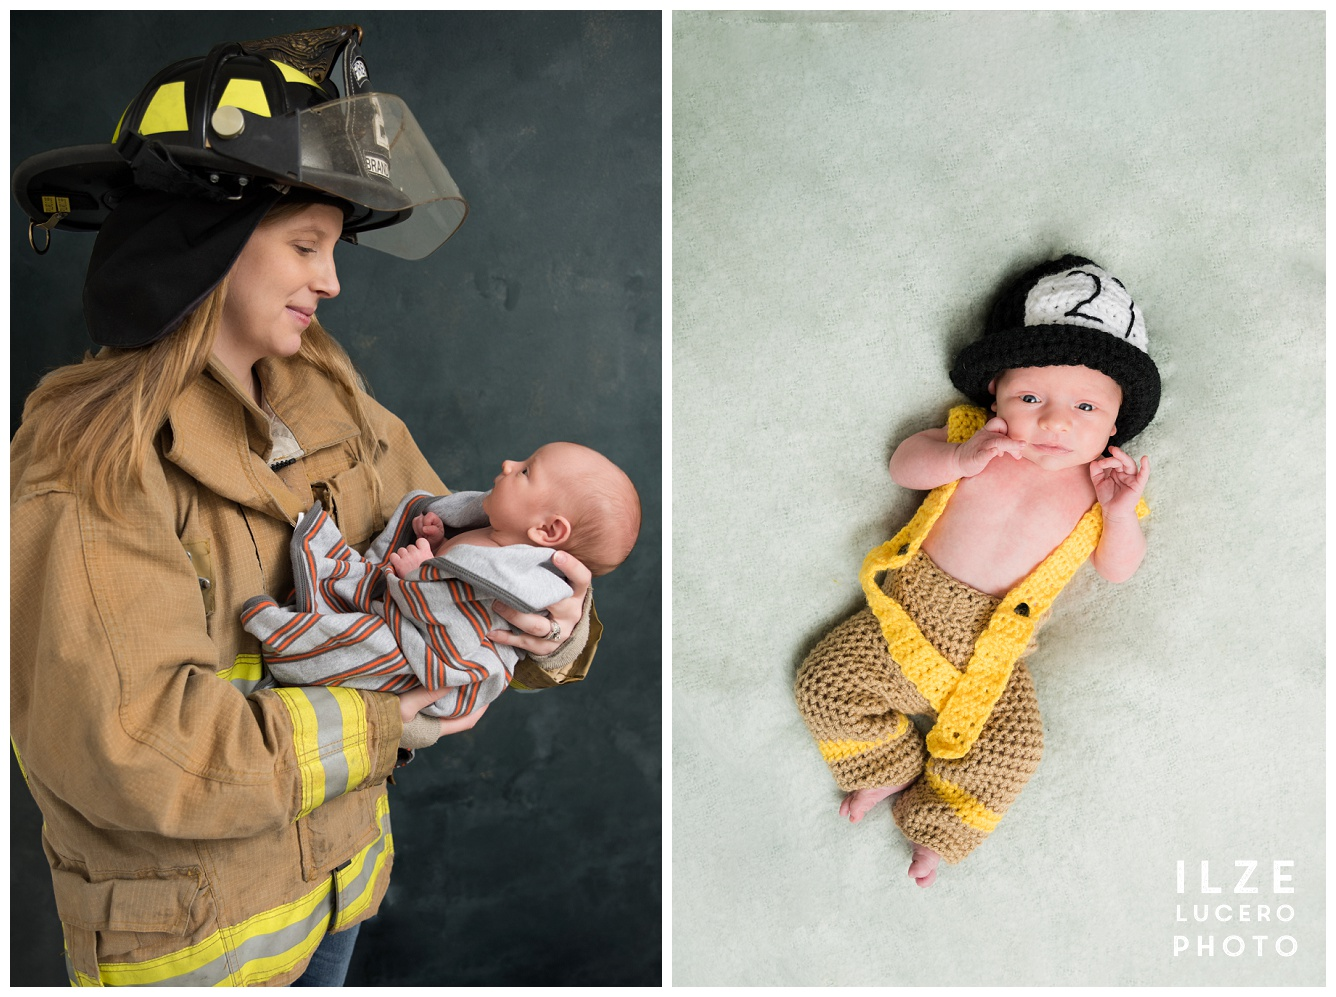 Firefighter mom